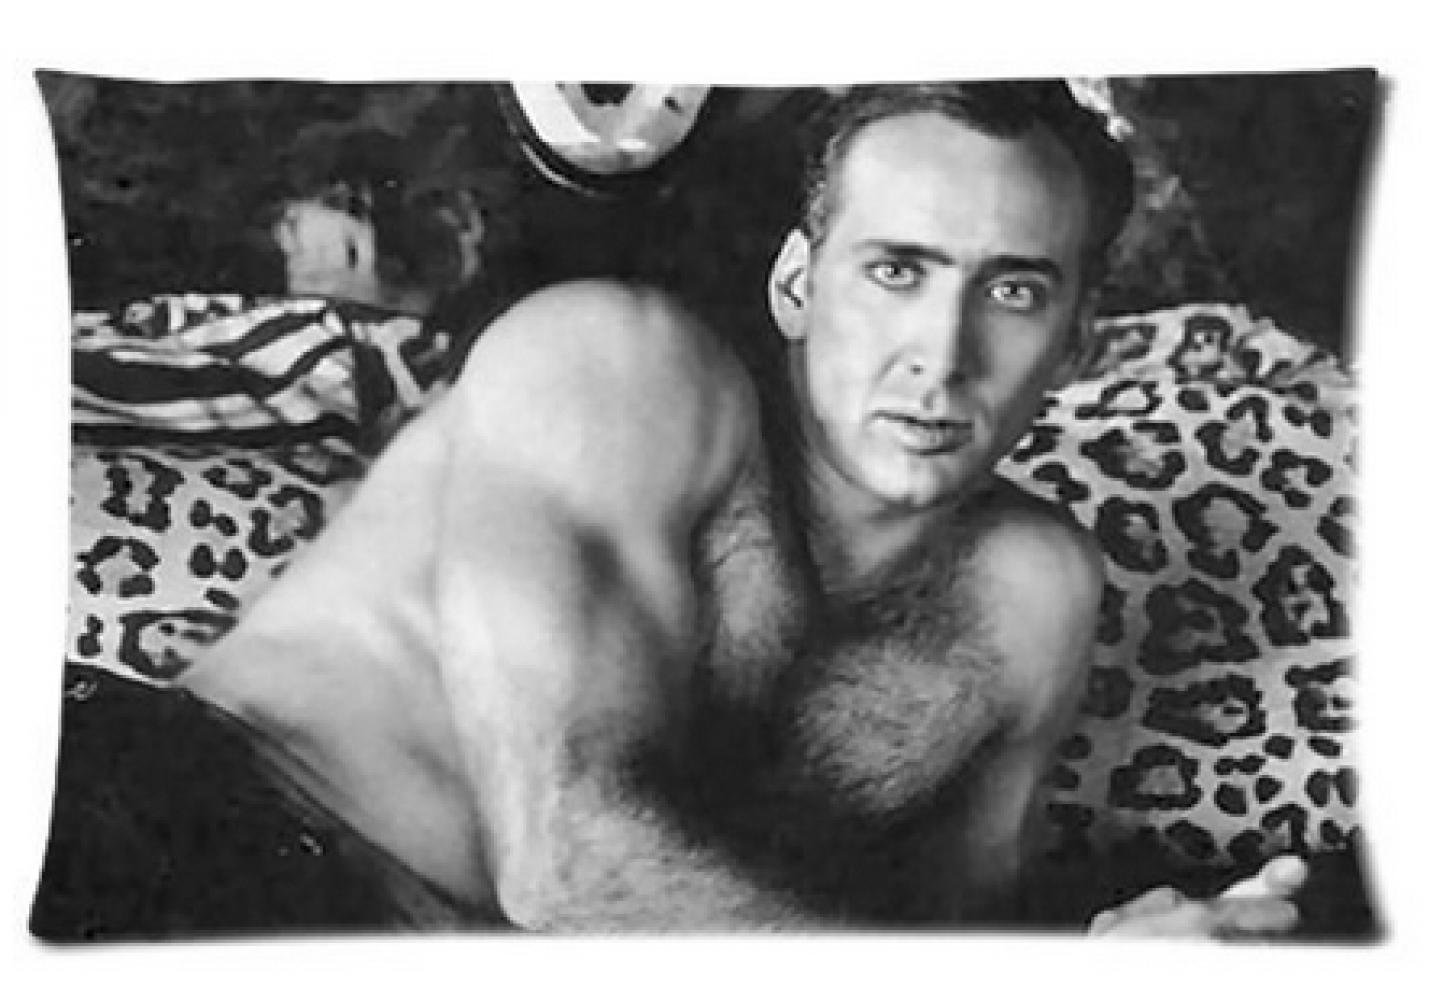 E-FASHION Custom Nicolas Cage Pillowcase Decorate Rectangl Pillow Cases 100% Cotton High Quality Standard Size20X30Inch(Two Sides)'